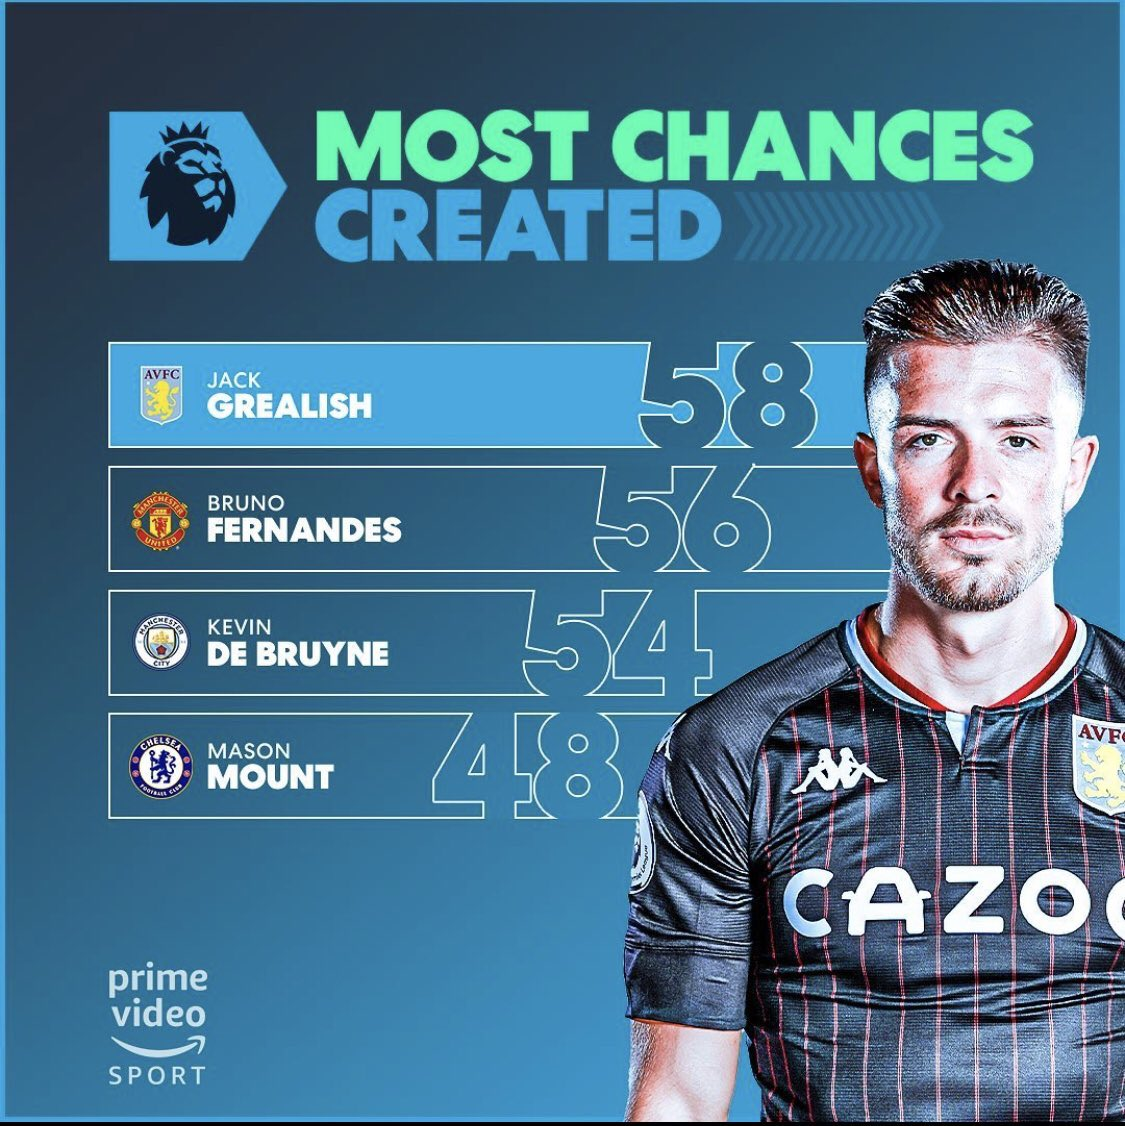 Mason Mount is 4th in the most chances created list.